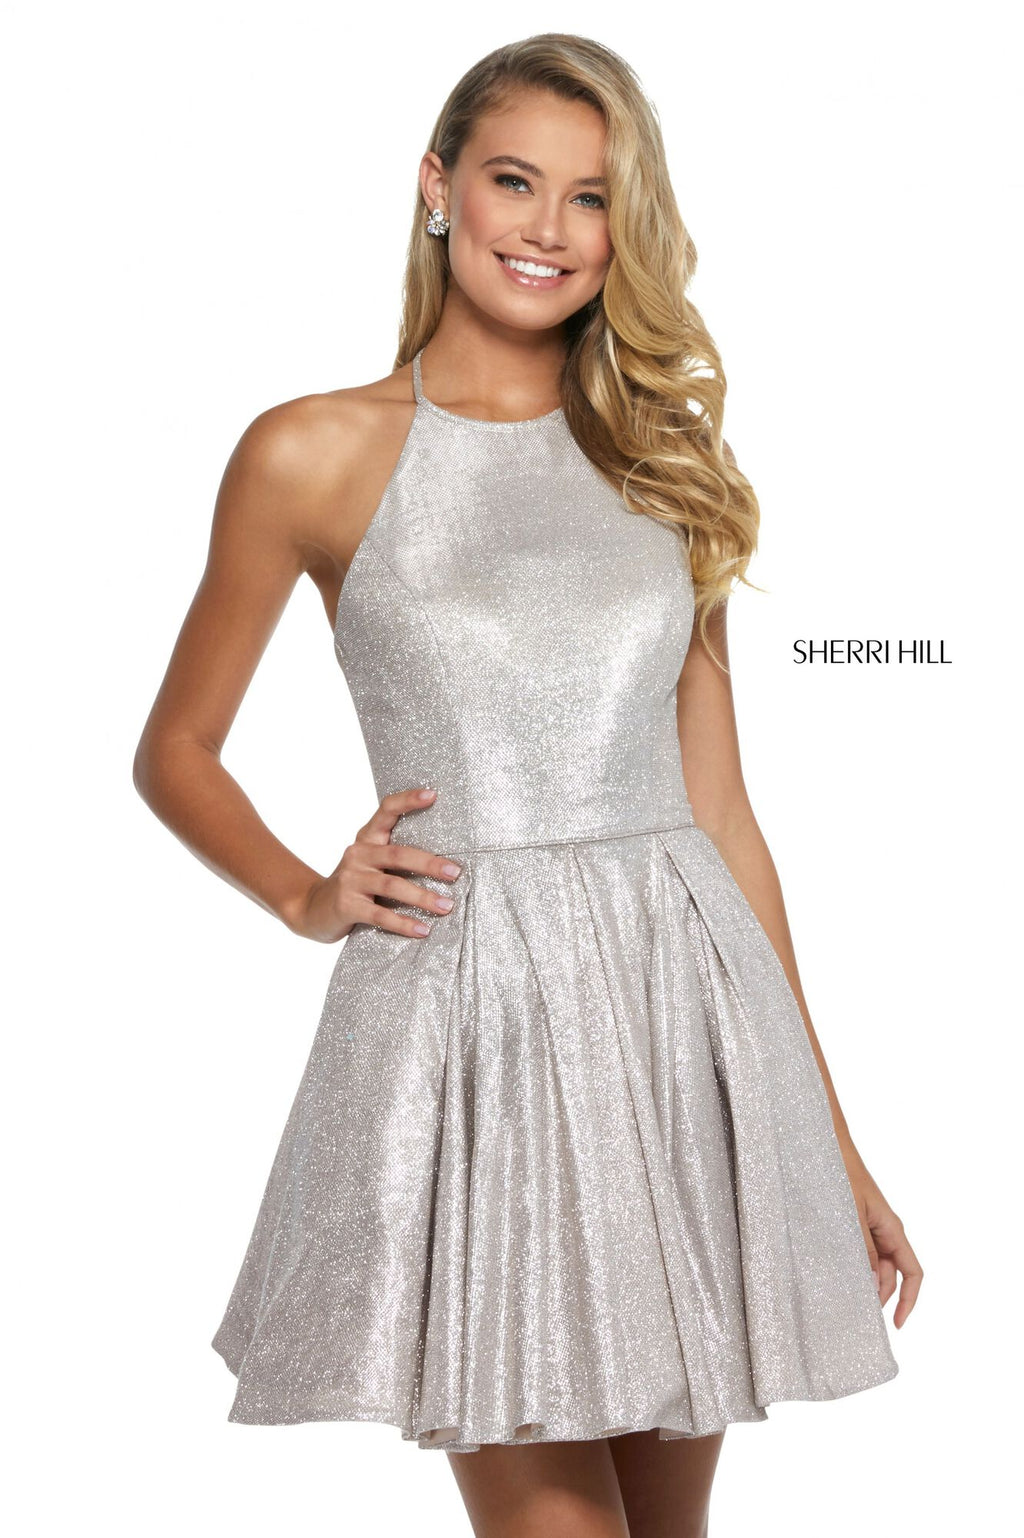 This Sherri Hill 52970 A-line cocktail dress in nude/silver features glitter throughout and a high halter neckline.